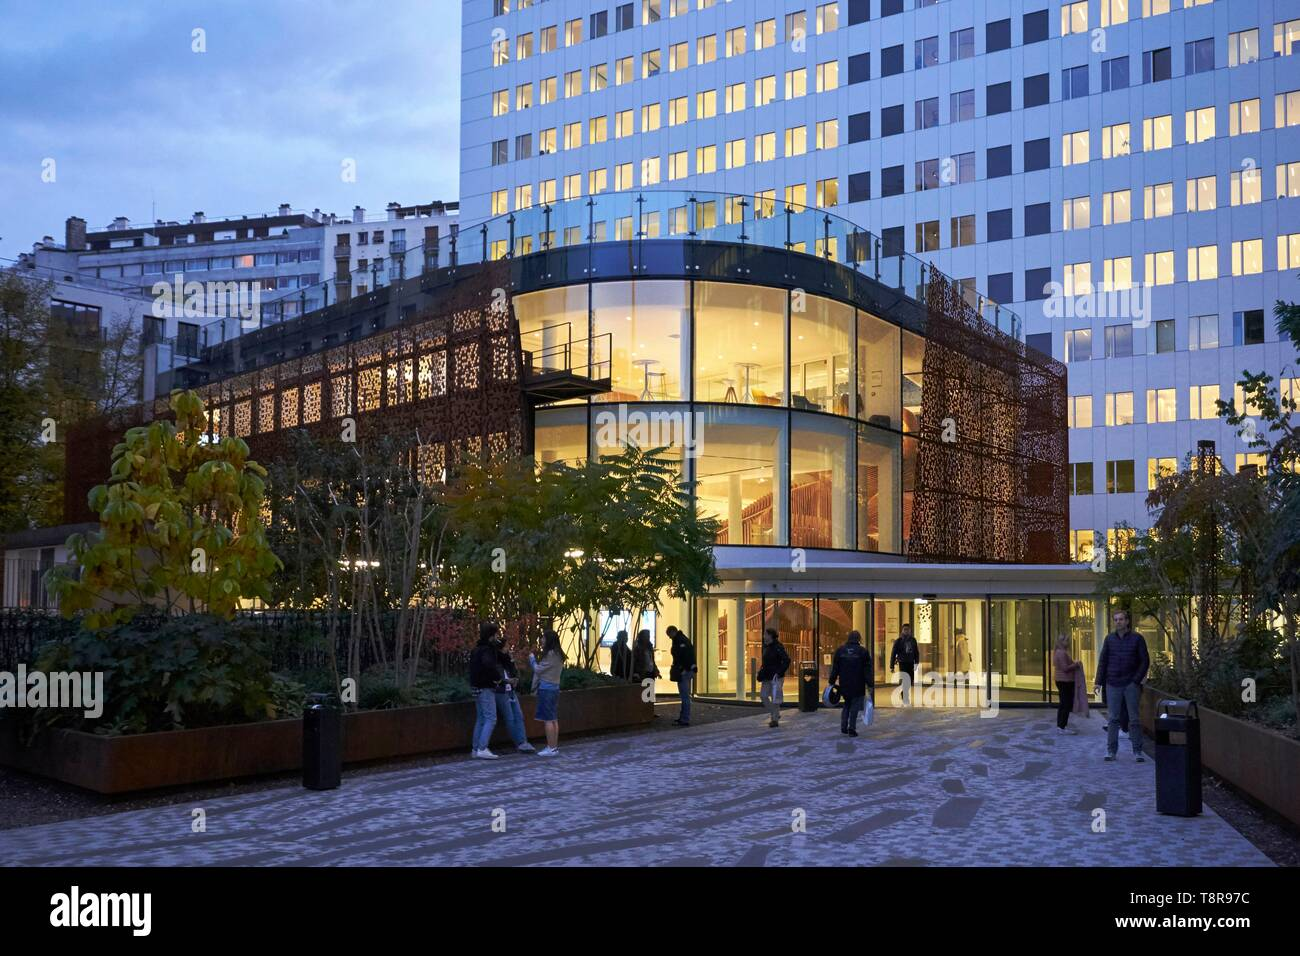 France, Paris, Grenelle district, New headquarters of the newspapers Les Echos and Le Parisien on the former site of the Velodrome d'Hiver (Vel d'Hiv) - Stock Image